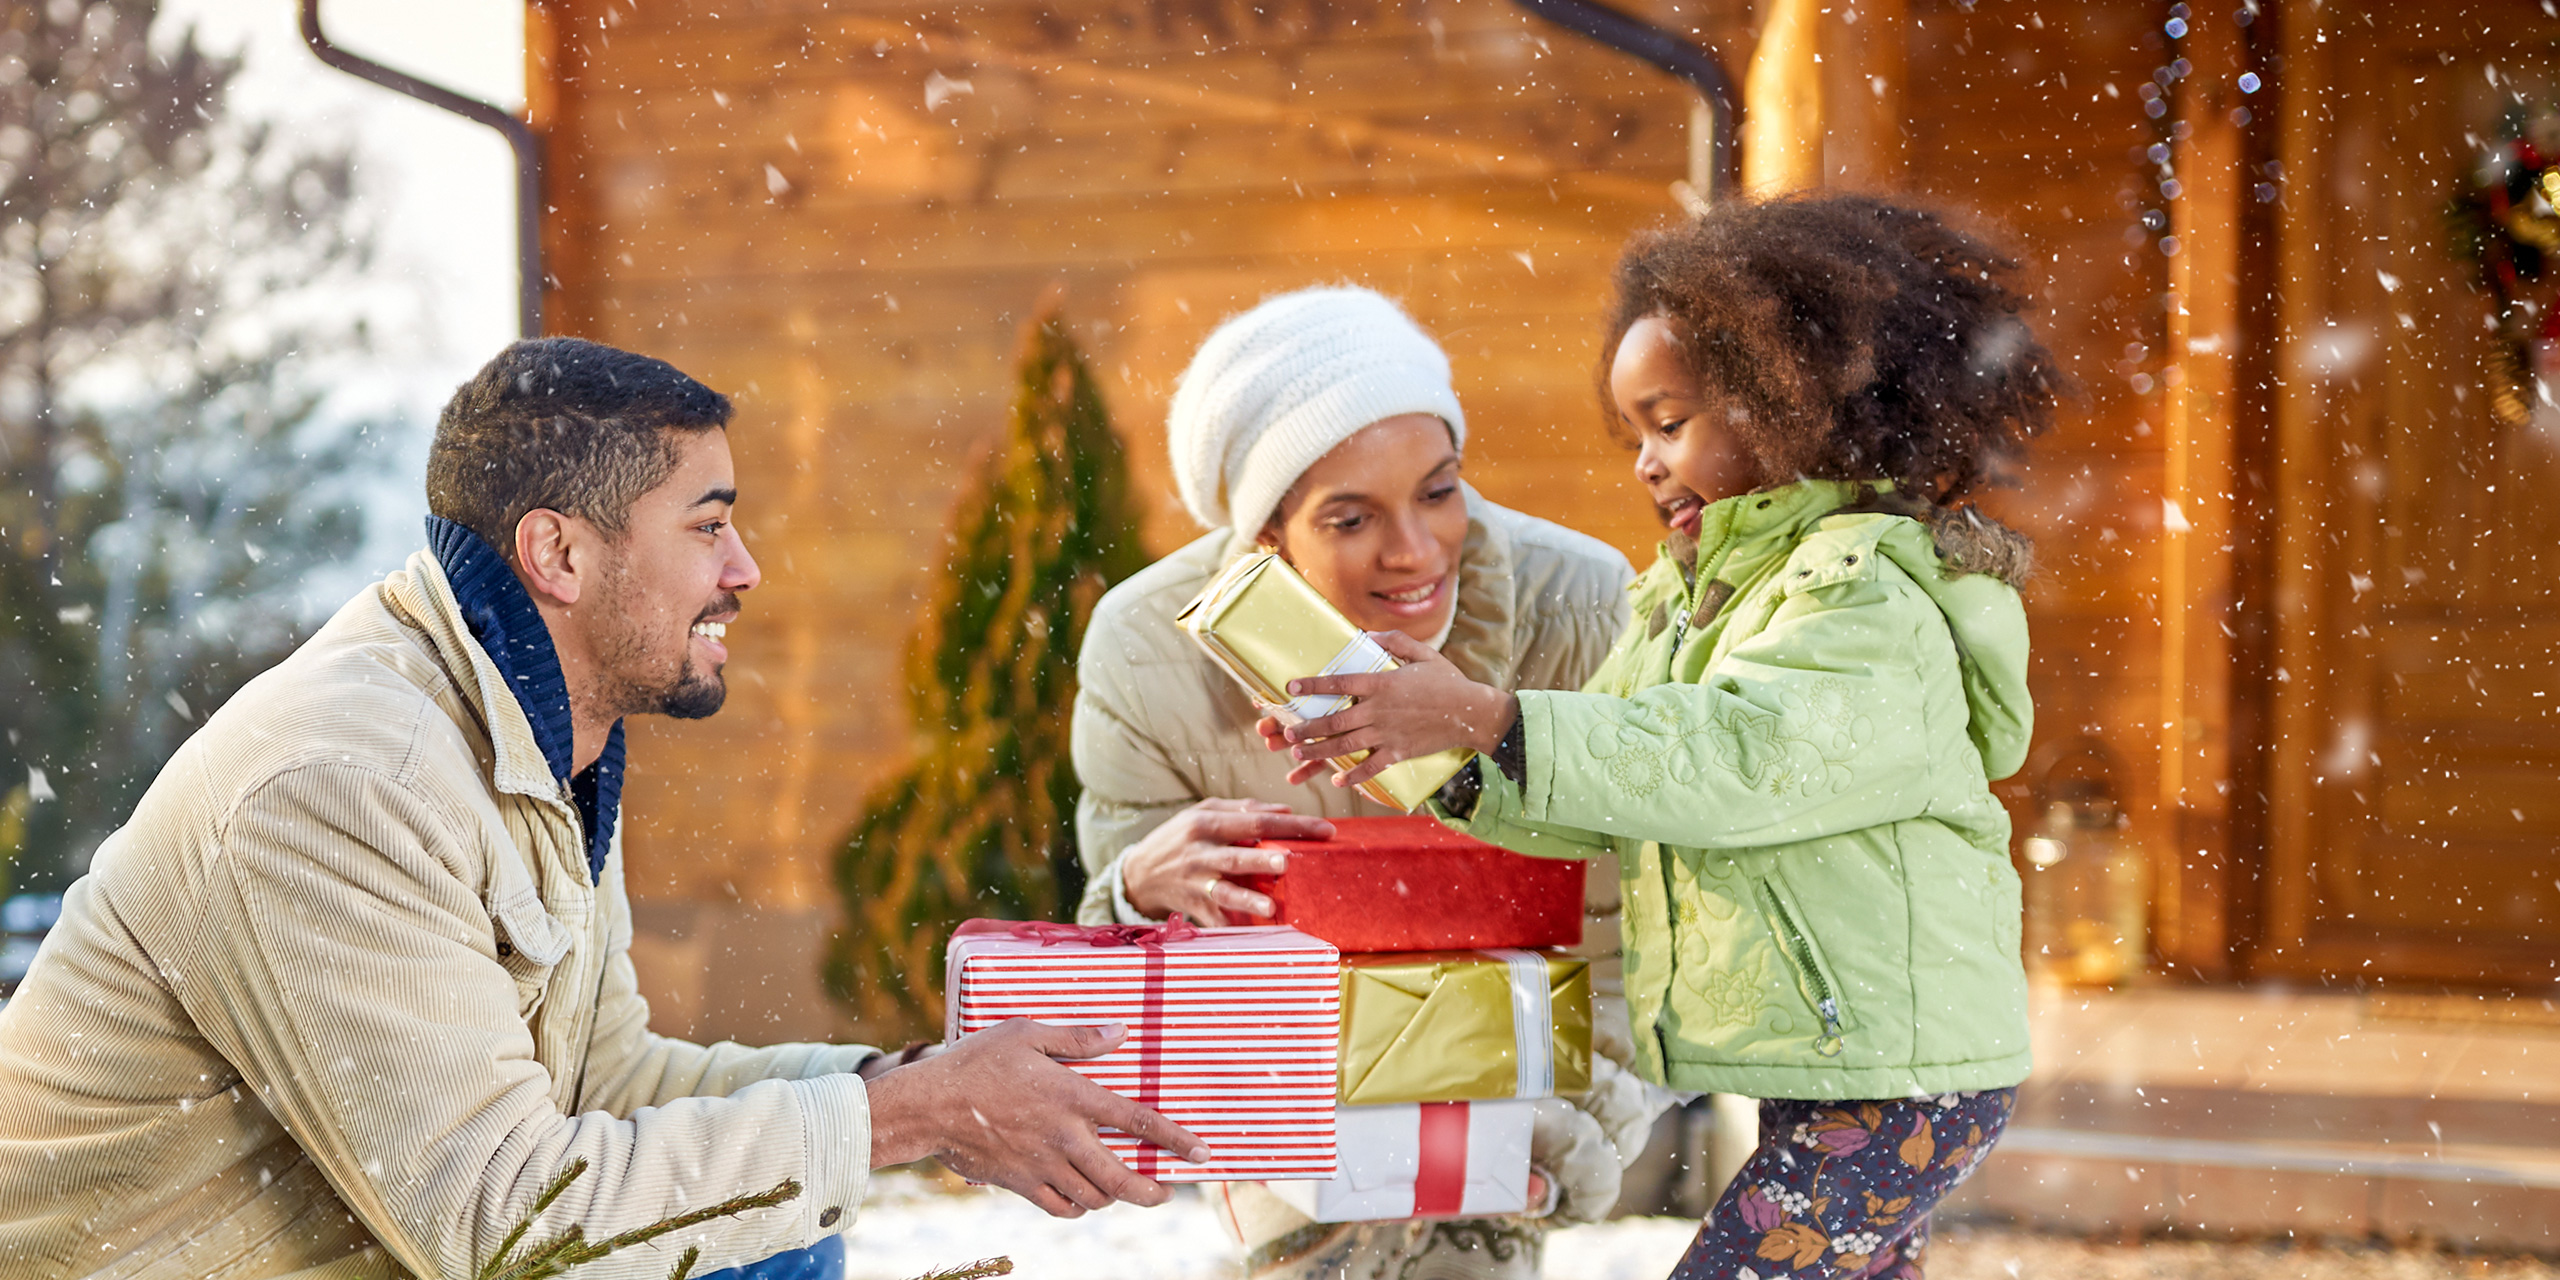 family gift giving holidays snowing; Courtesy of Lucky Business /Shutterstock